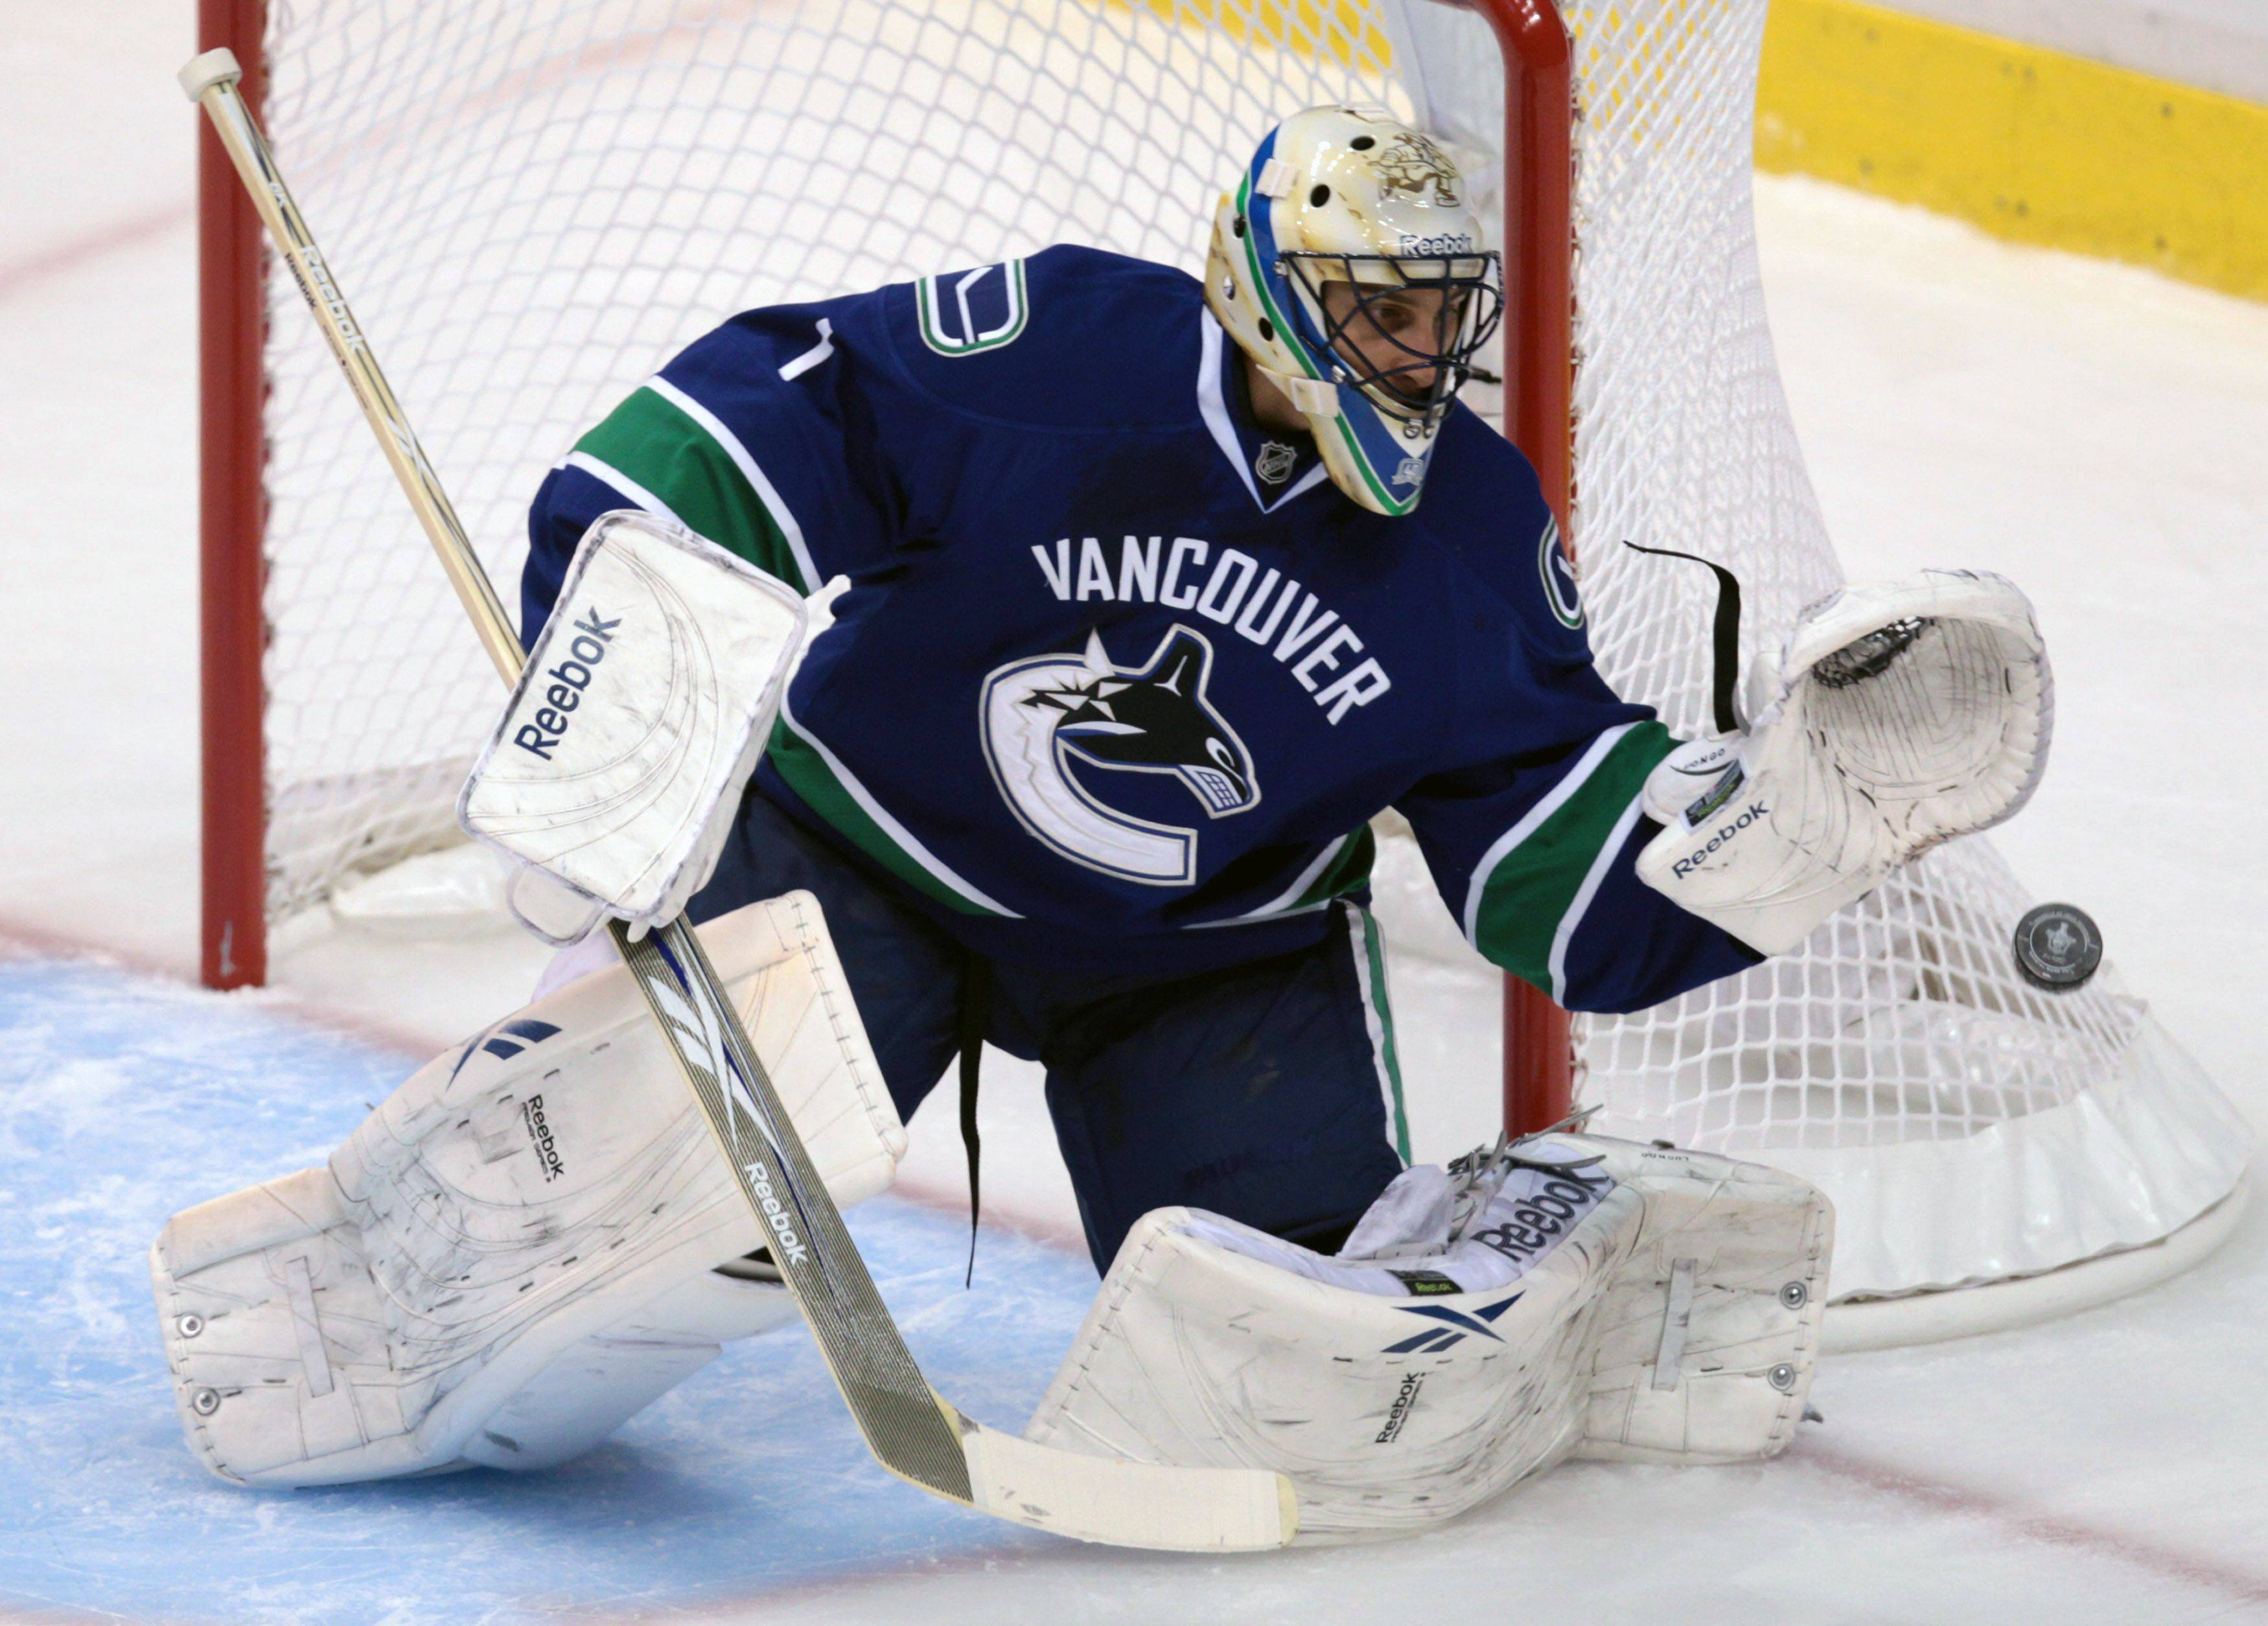 The Canucks' Roberto Luongo makes a save against the Blackhawks during the first period of Game 1 Wednesday.